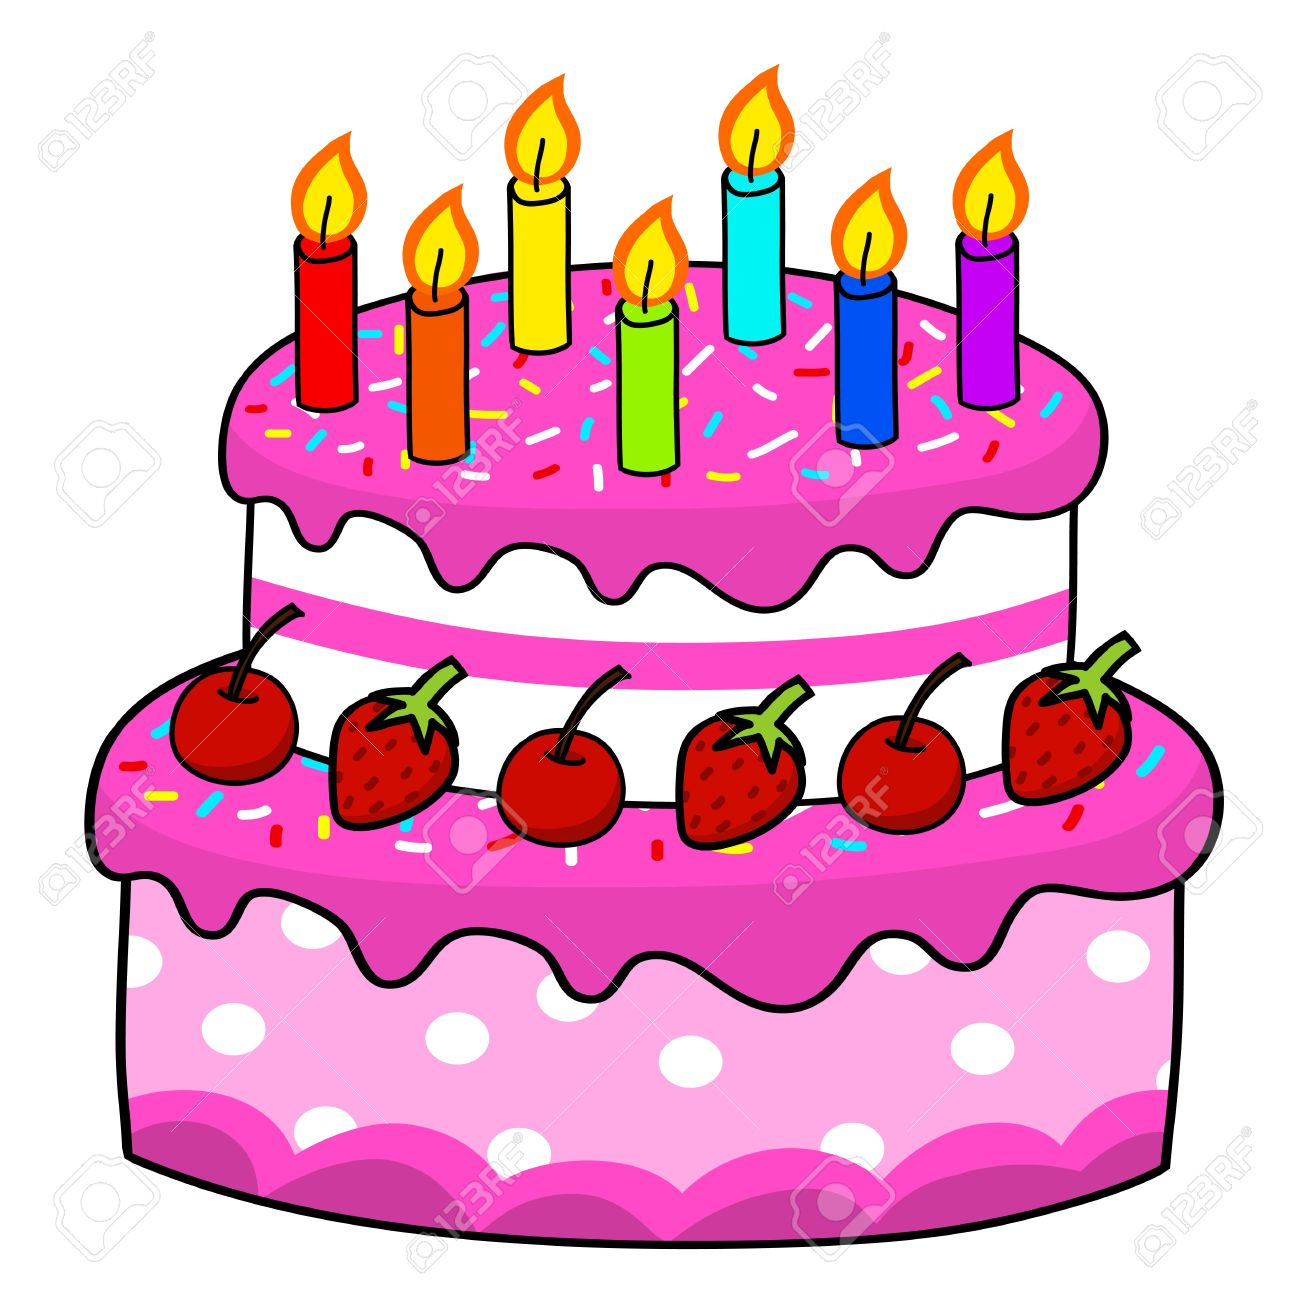 birthday cake drawing cartoon ; 15356747-cartoon-cake-hand-drawing-vector